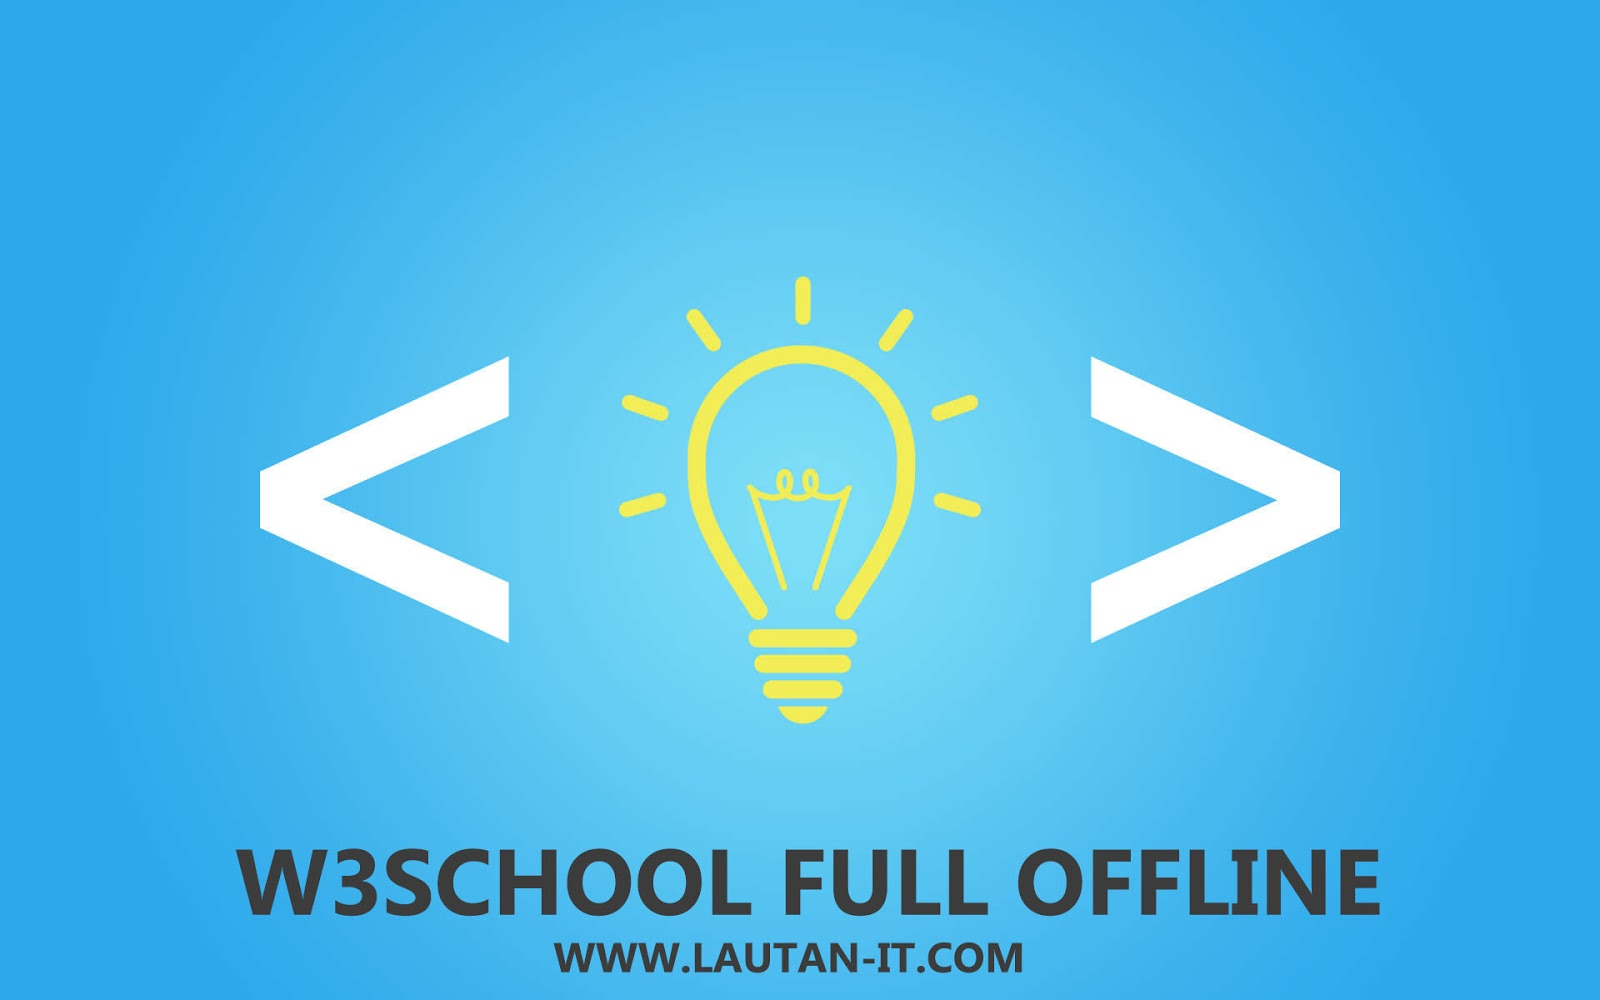 DOWNLOAD W3SCHOOL FULL OFFLINE